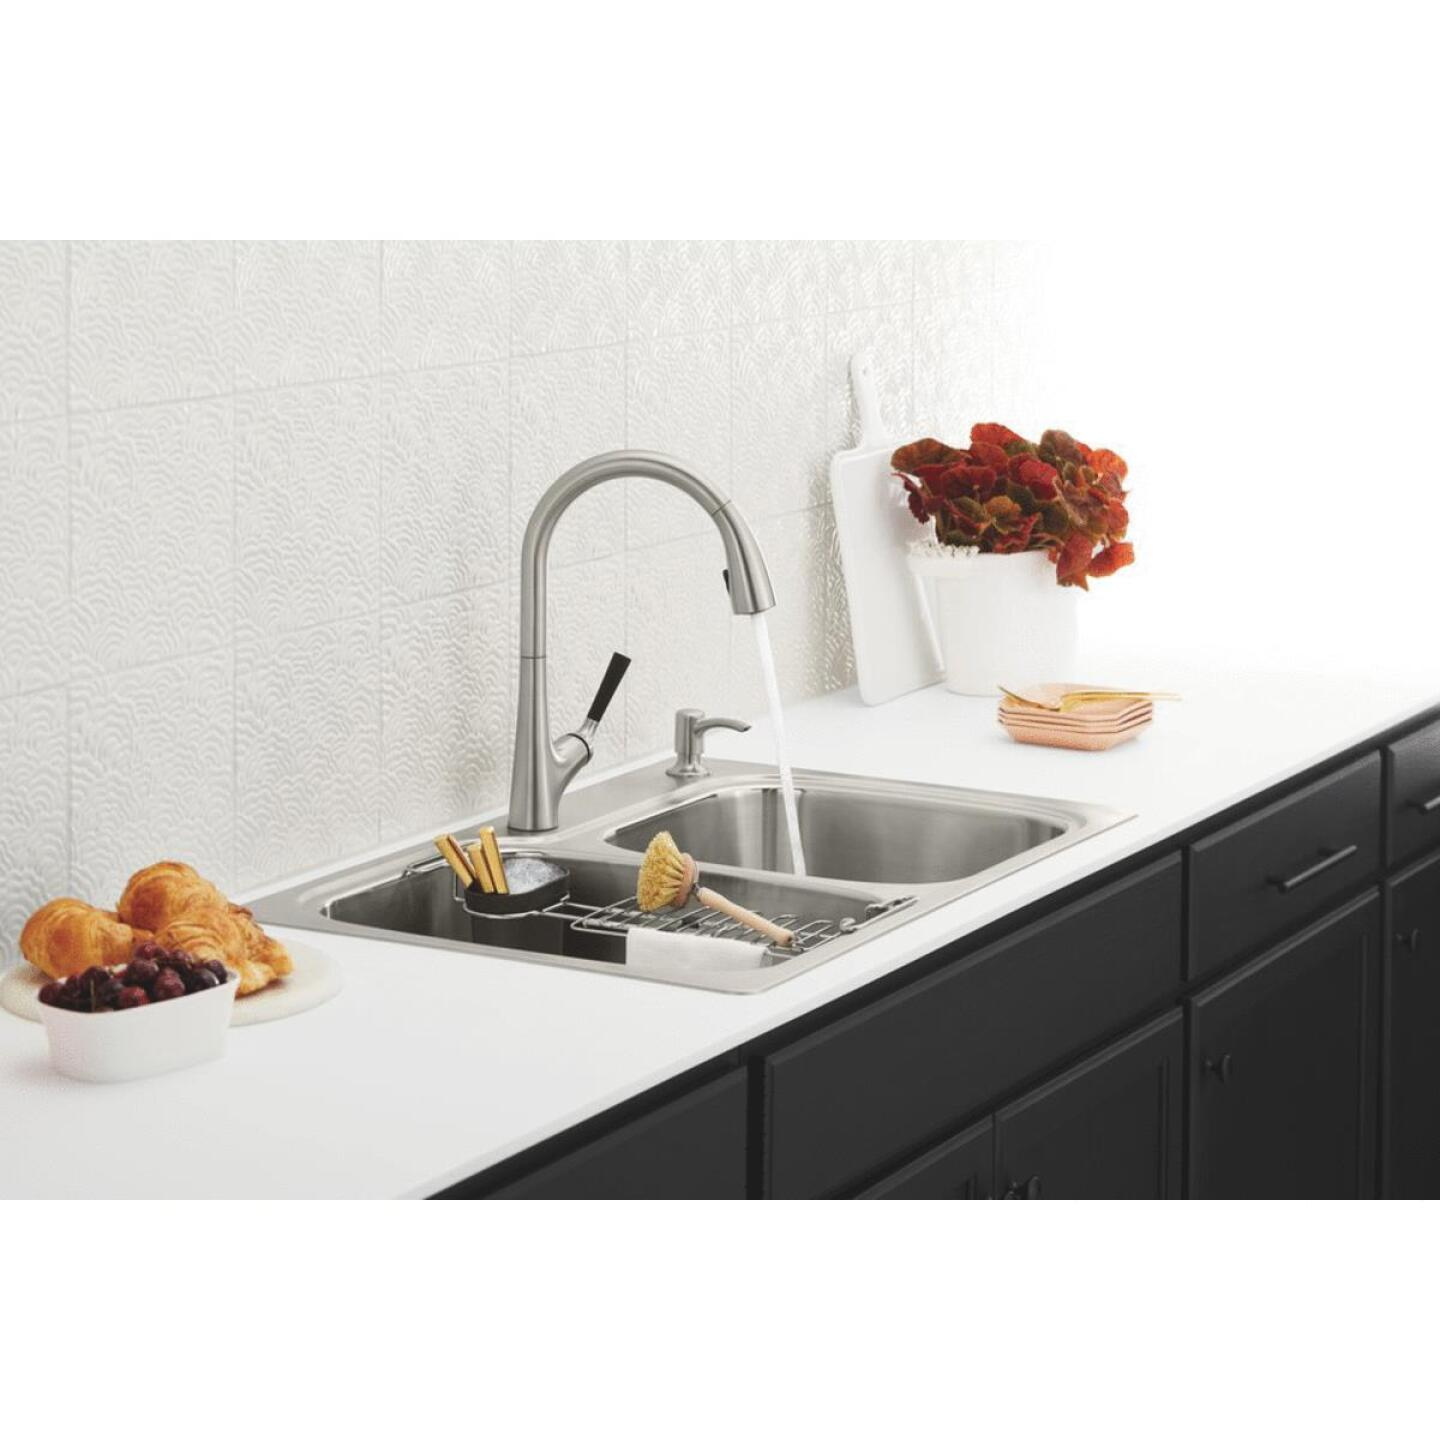 Kohler Malleco Single Handle Lever Pull-Down Kitchen Faucet, Stainless Image 7